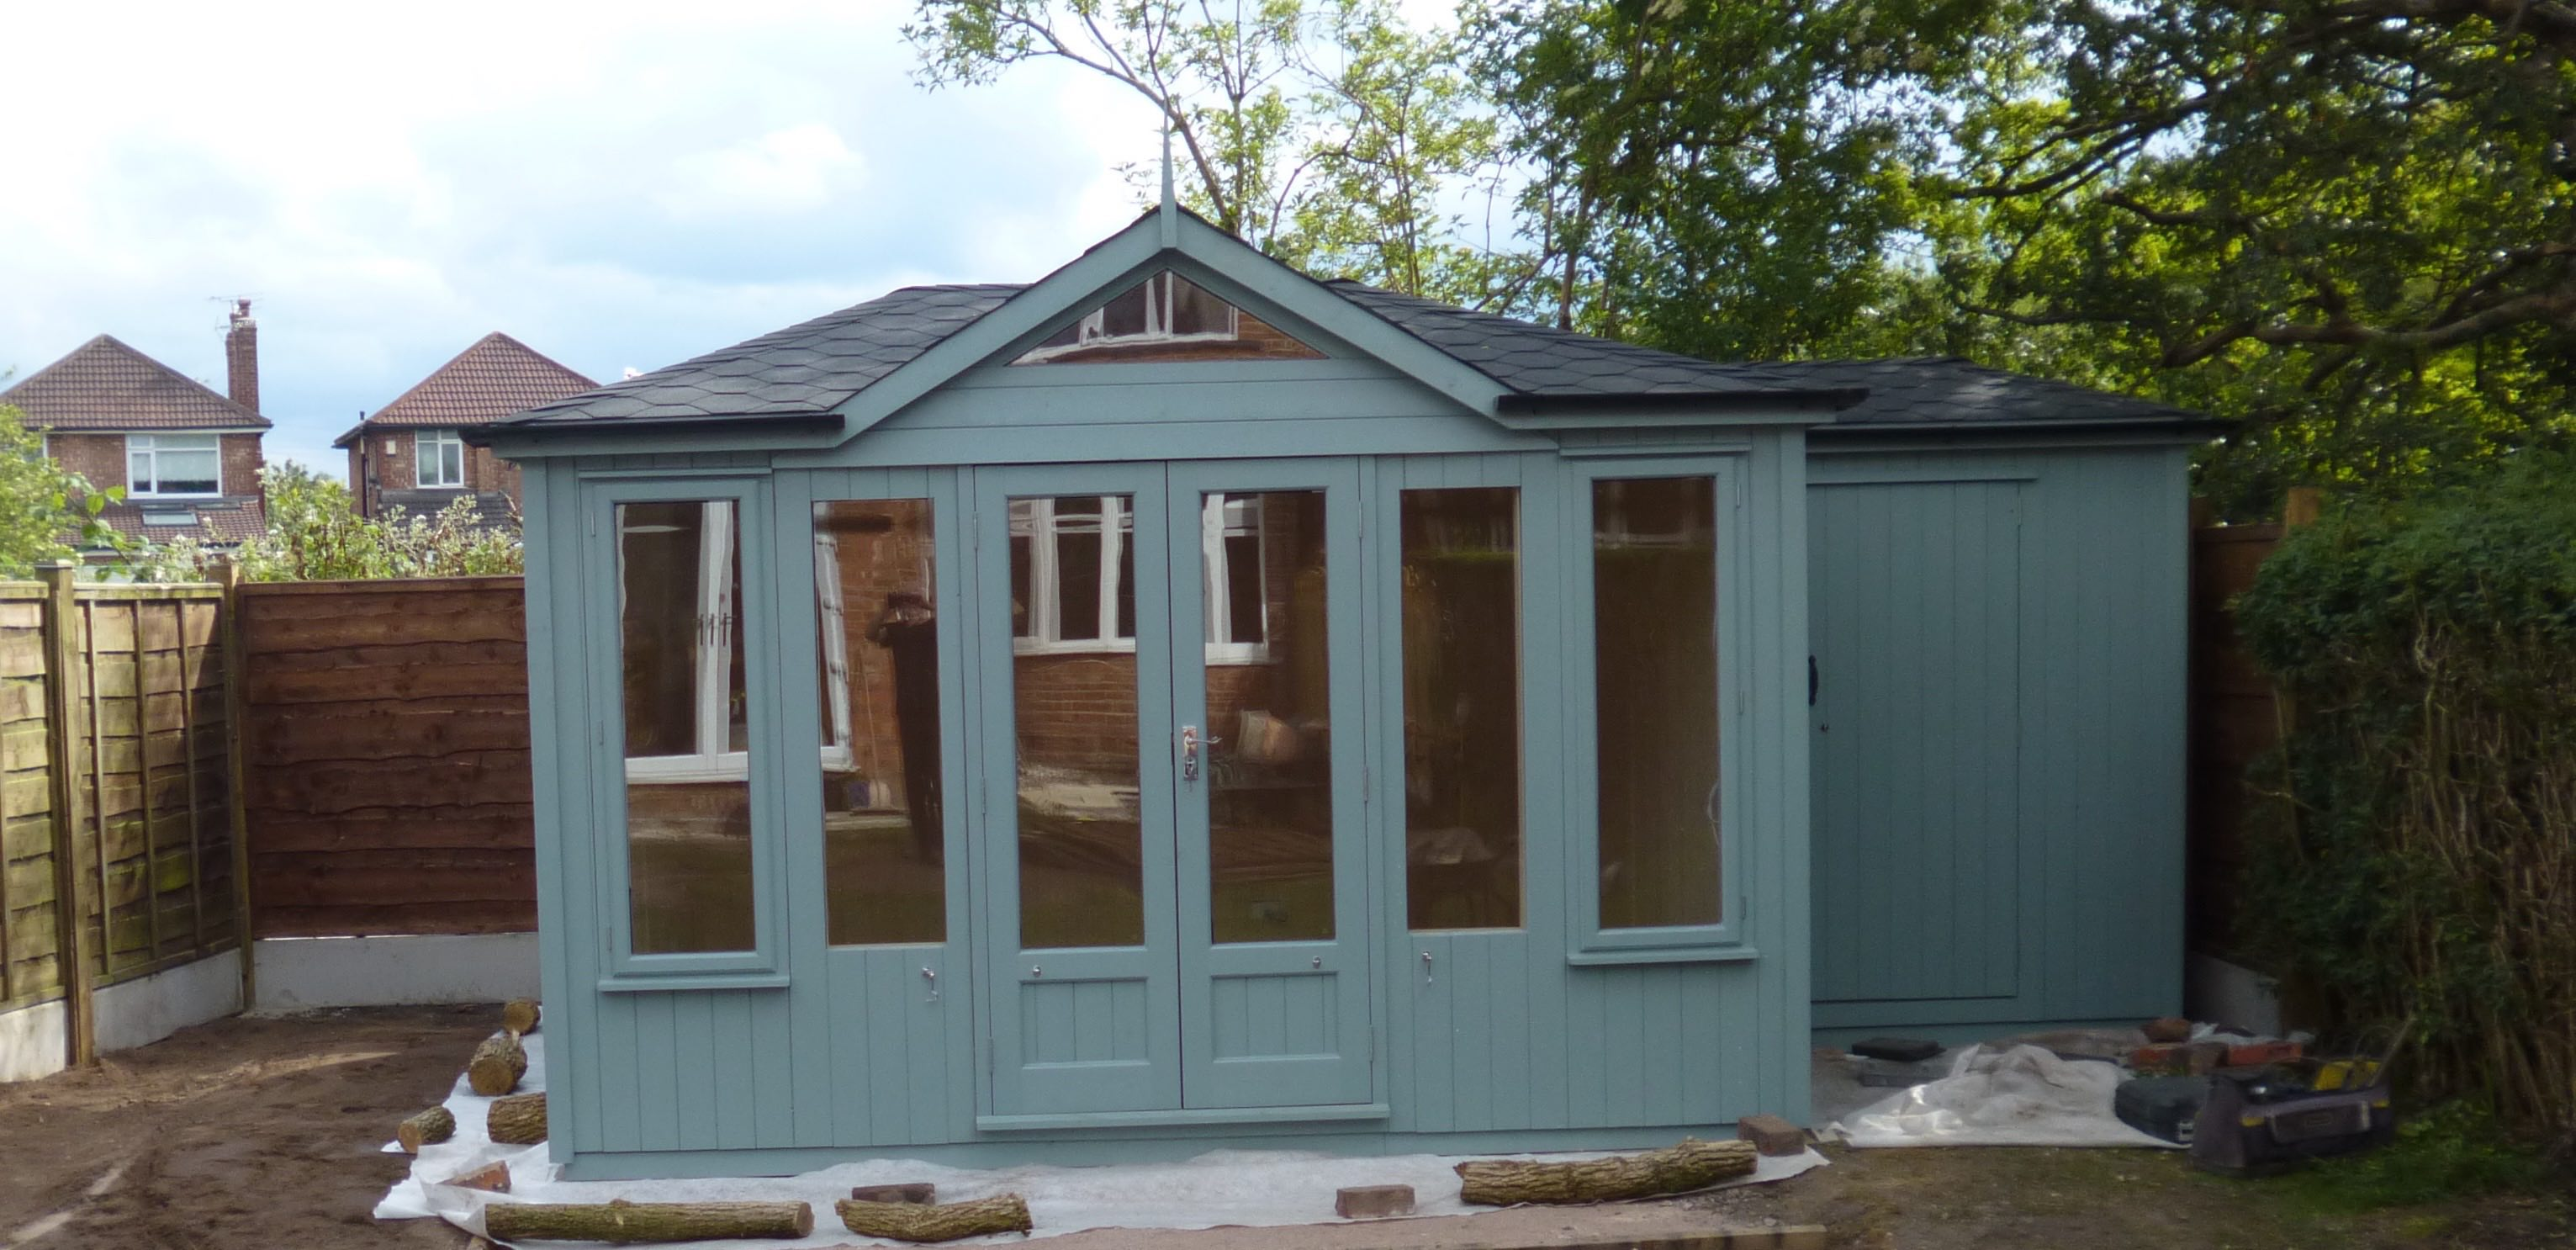 BESPOKE SUMMERHOUSE